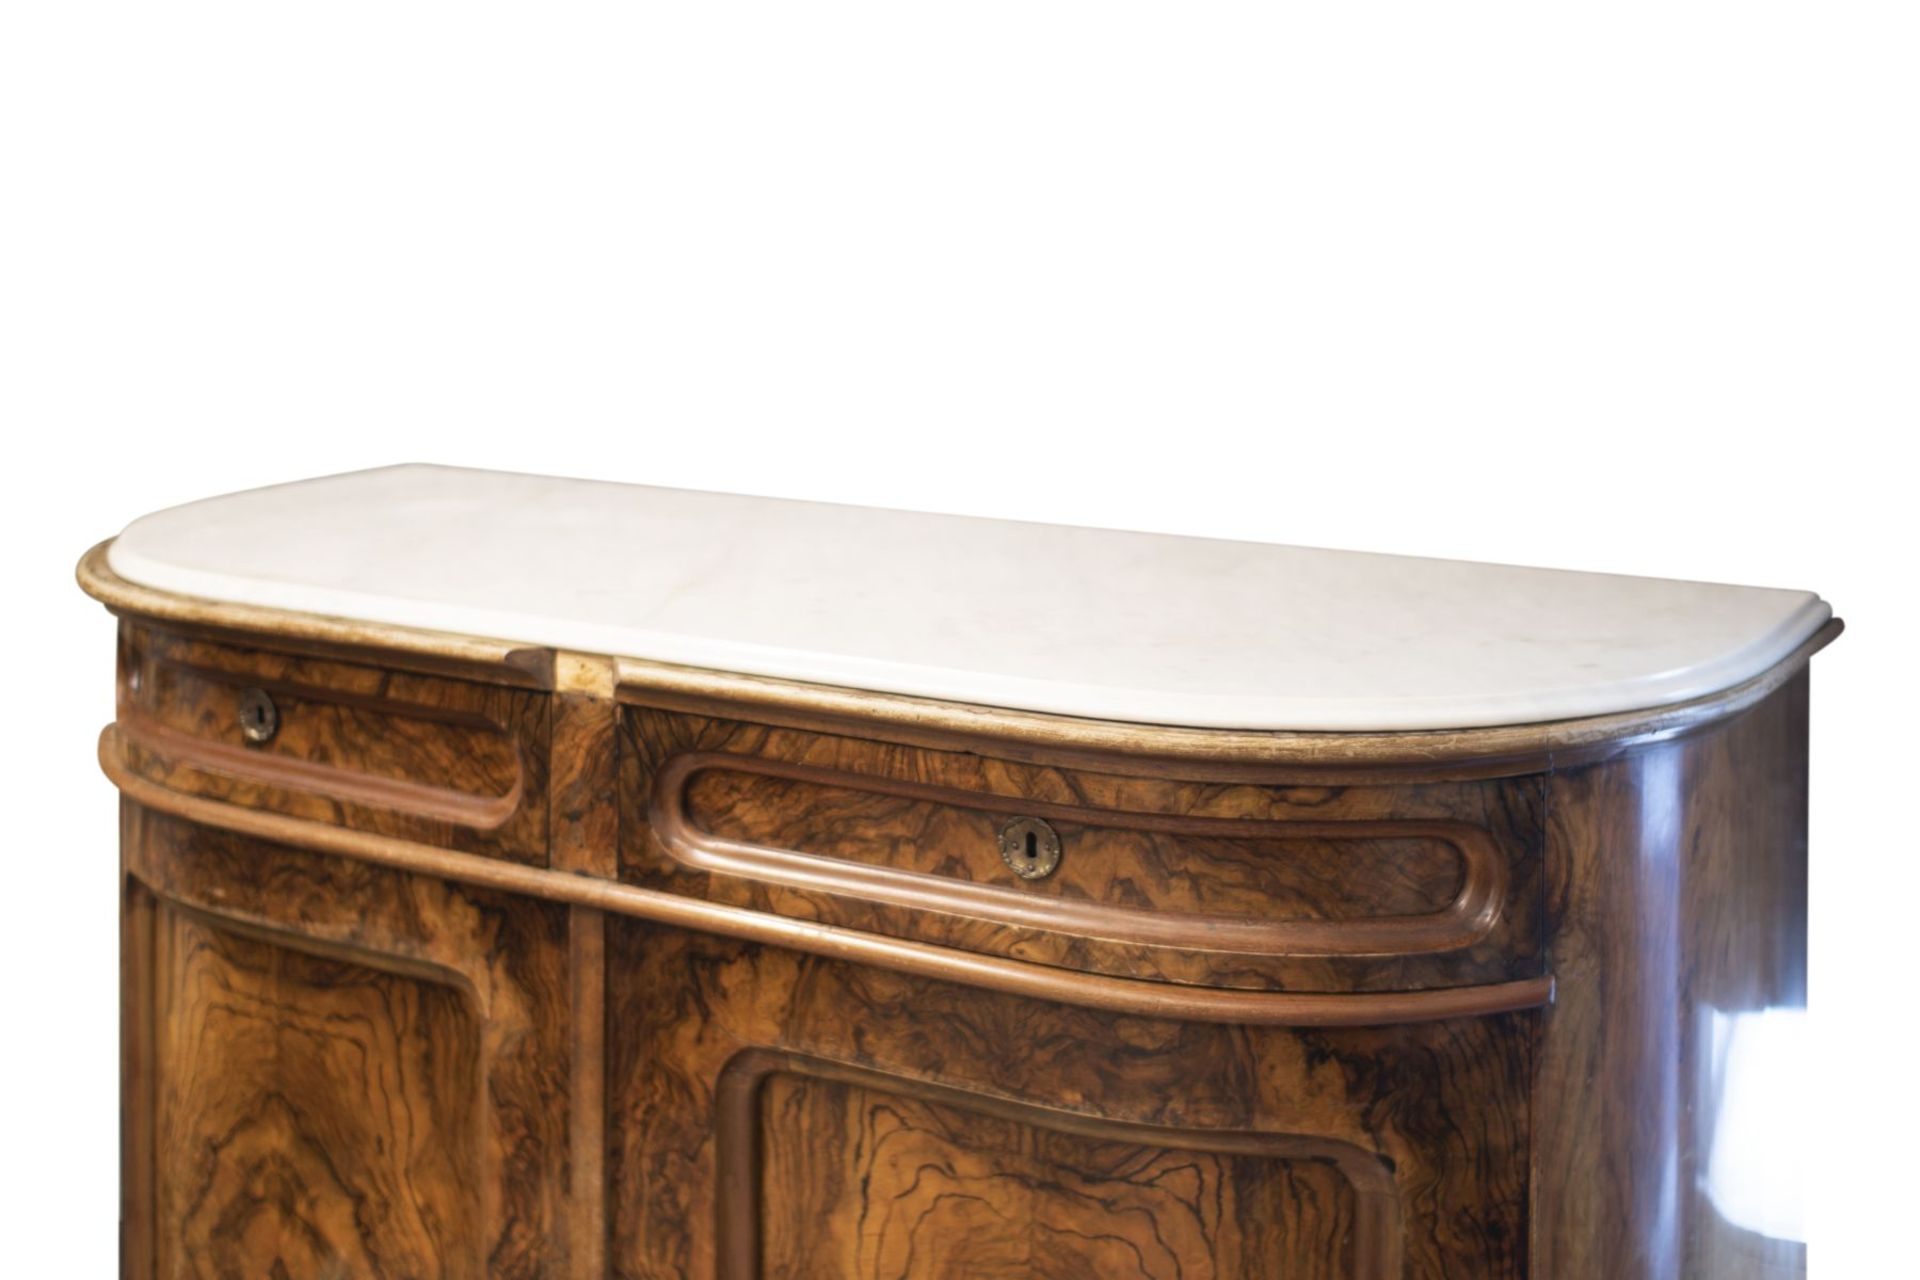 Salon chest of drawers with profiled marble top - Image 4 of 6